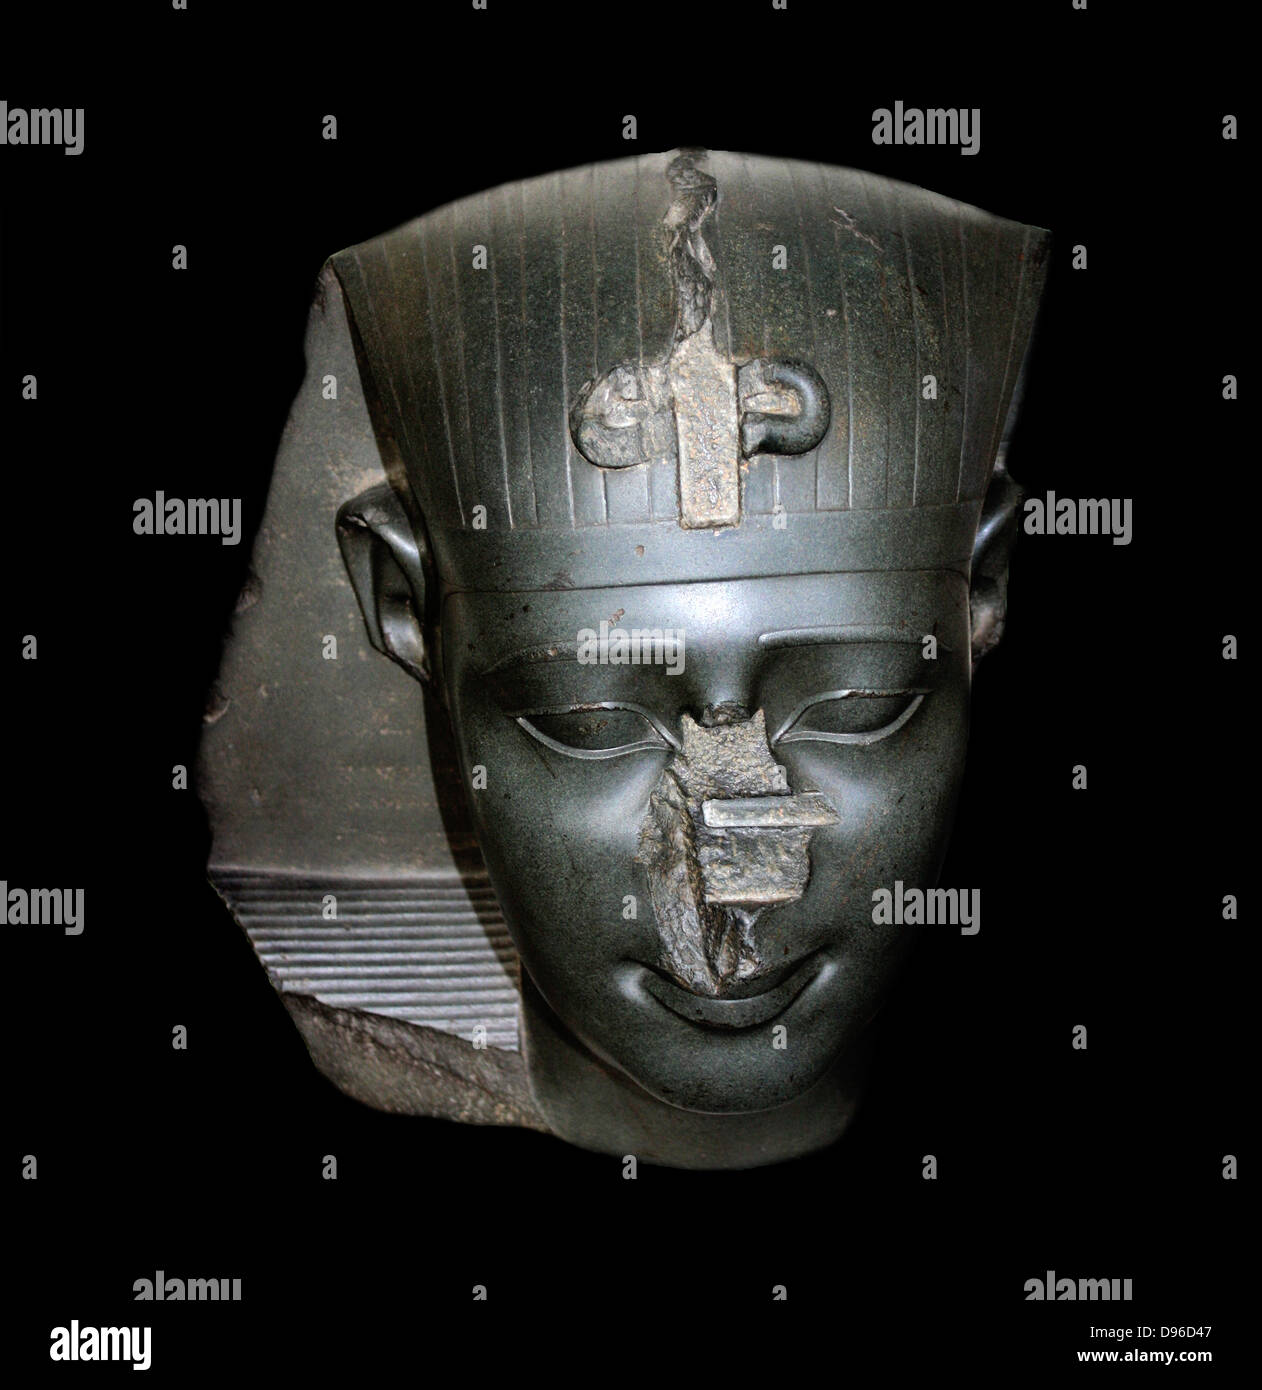 Head from a statue of a king. Thirtieth Dynasty, about 370 BC. This royal head is an example of the very fine quality - Stock Image